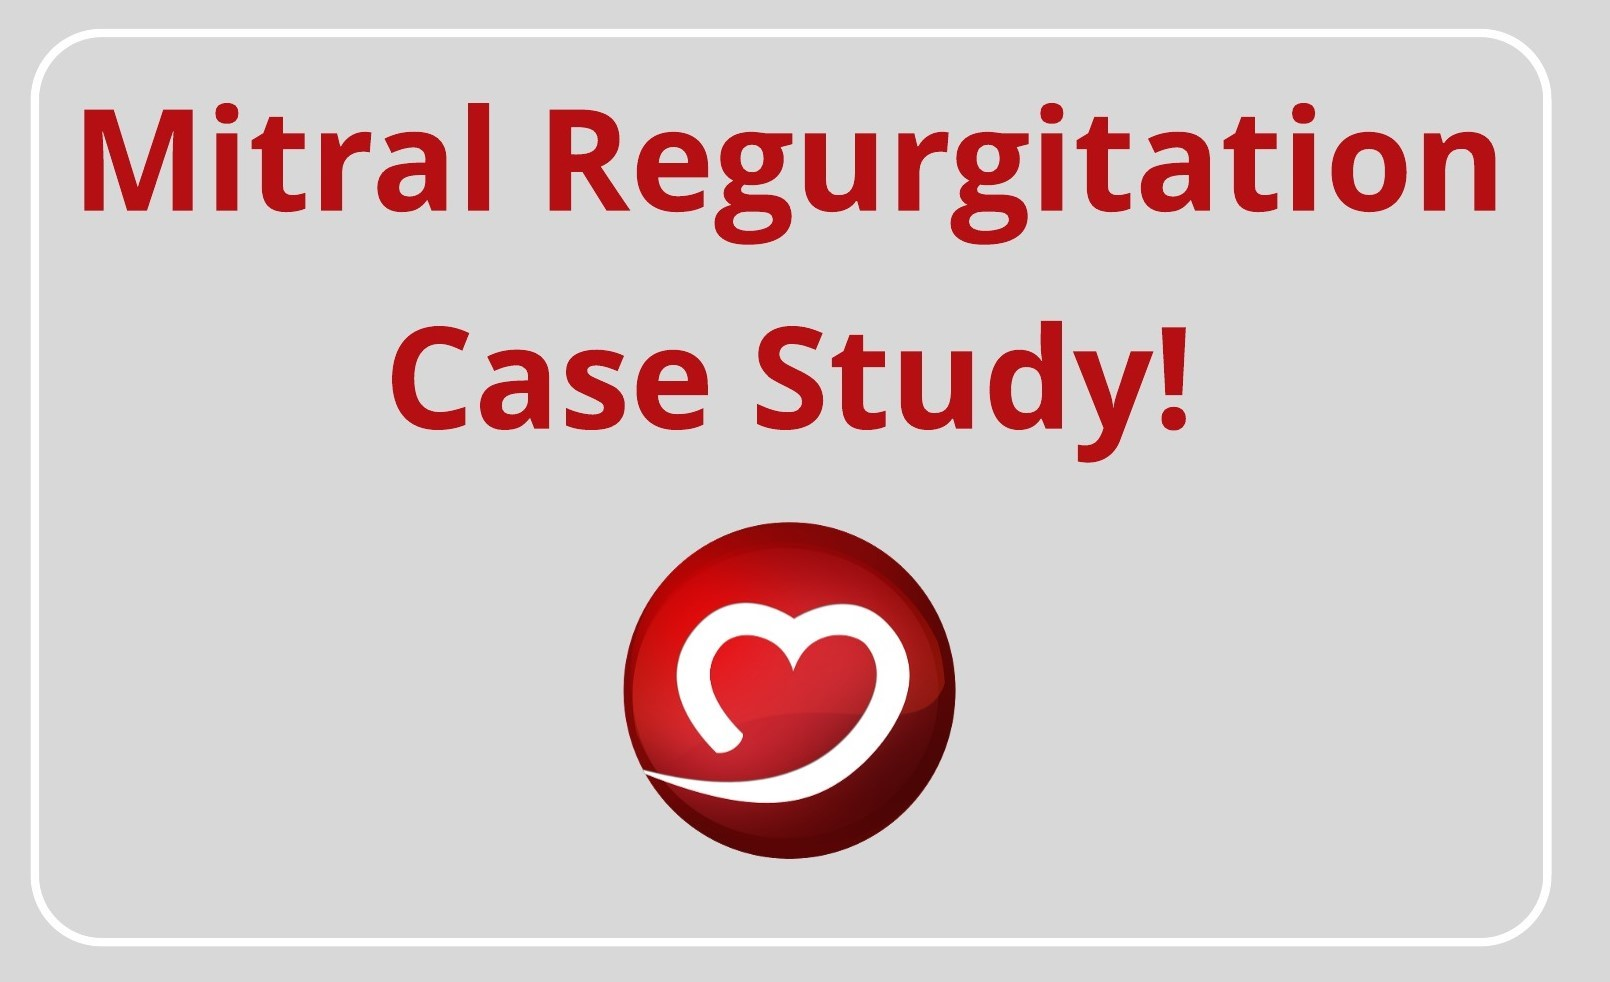 Mitral Regurgitation Case Study!